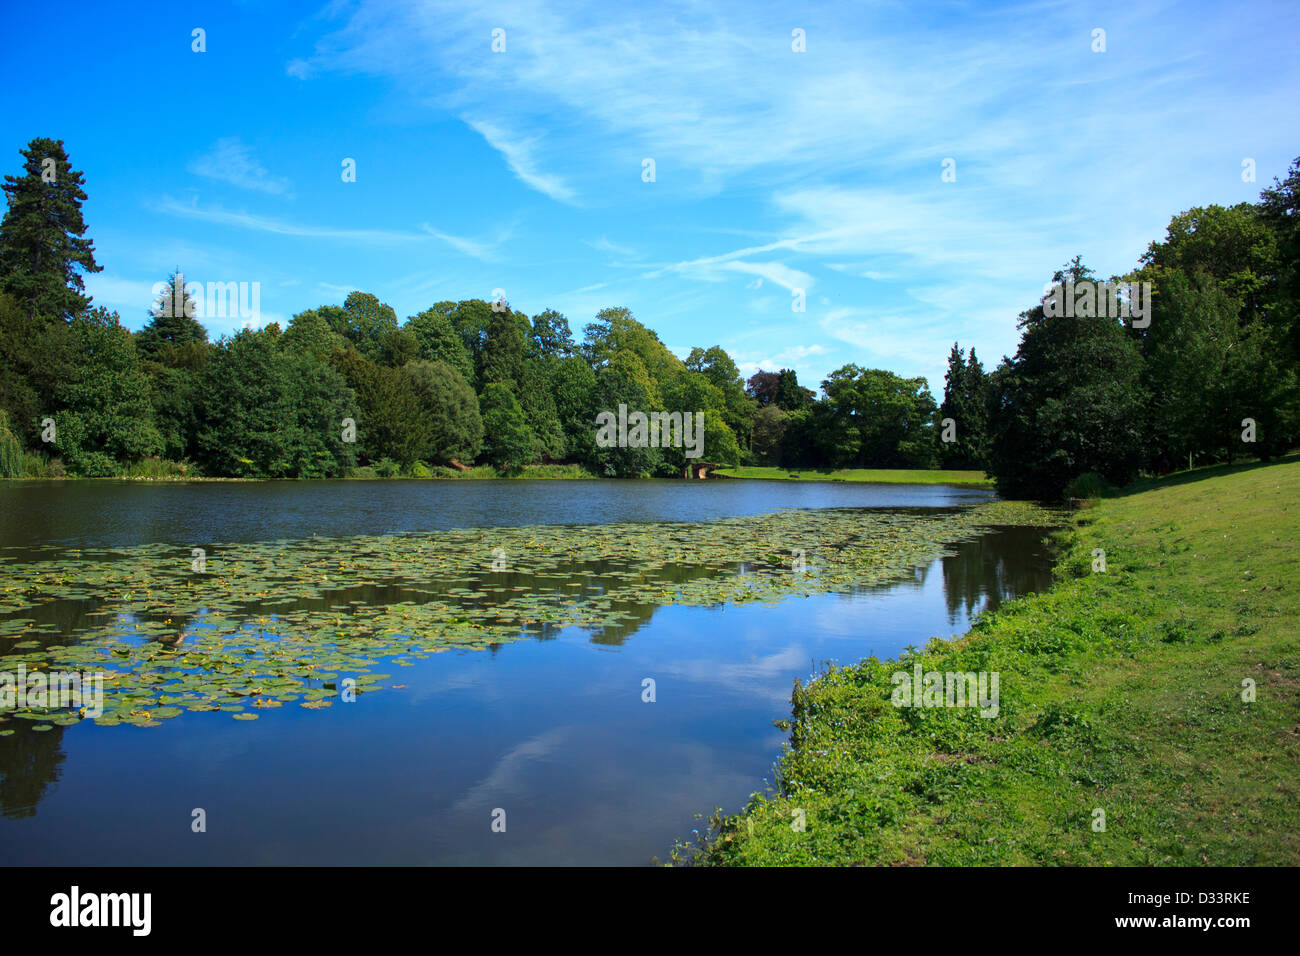 English countryside on a glorious day. - Stock Image